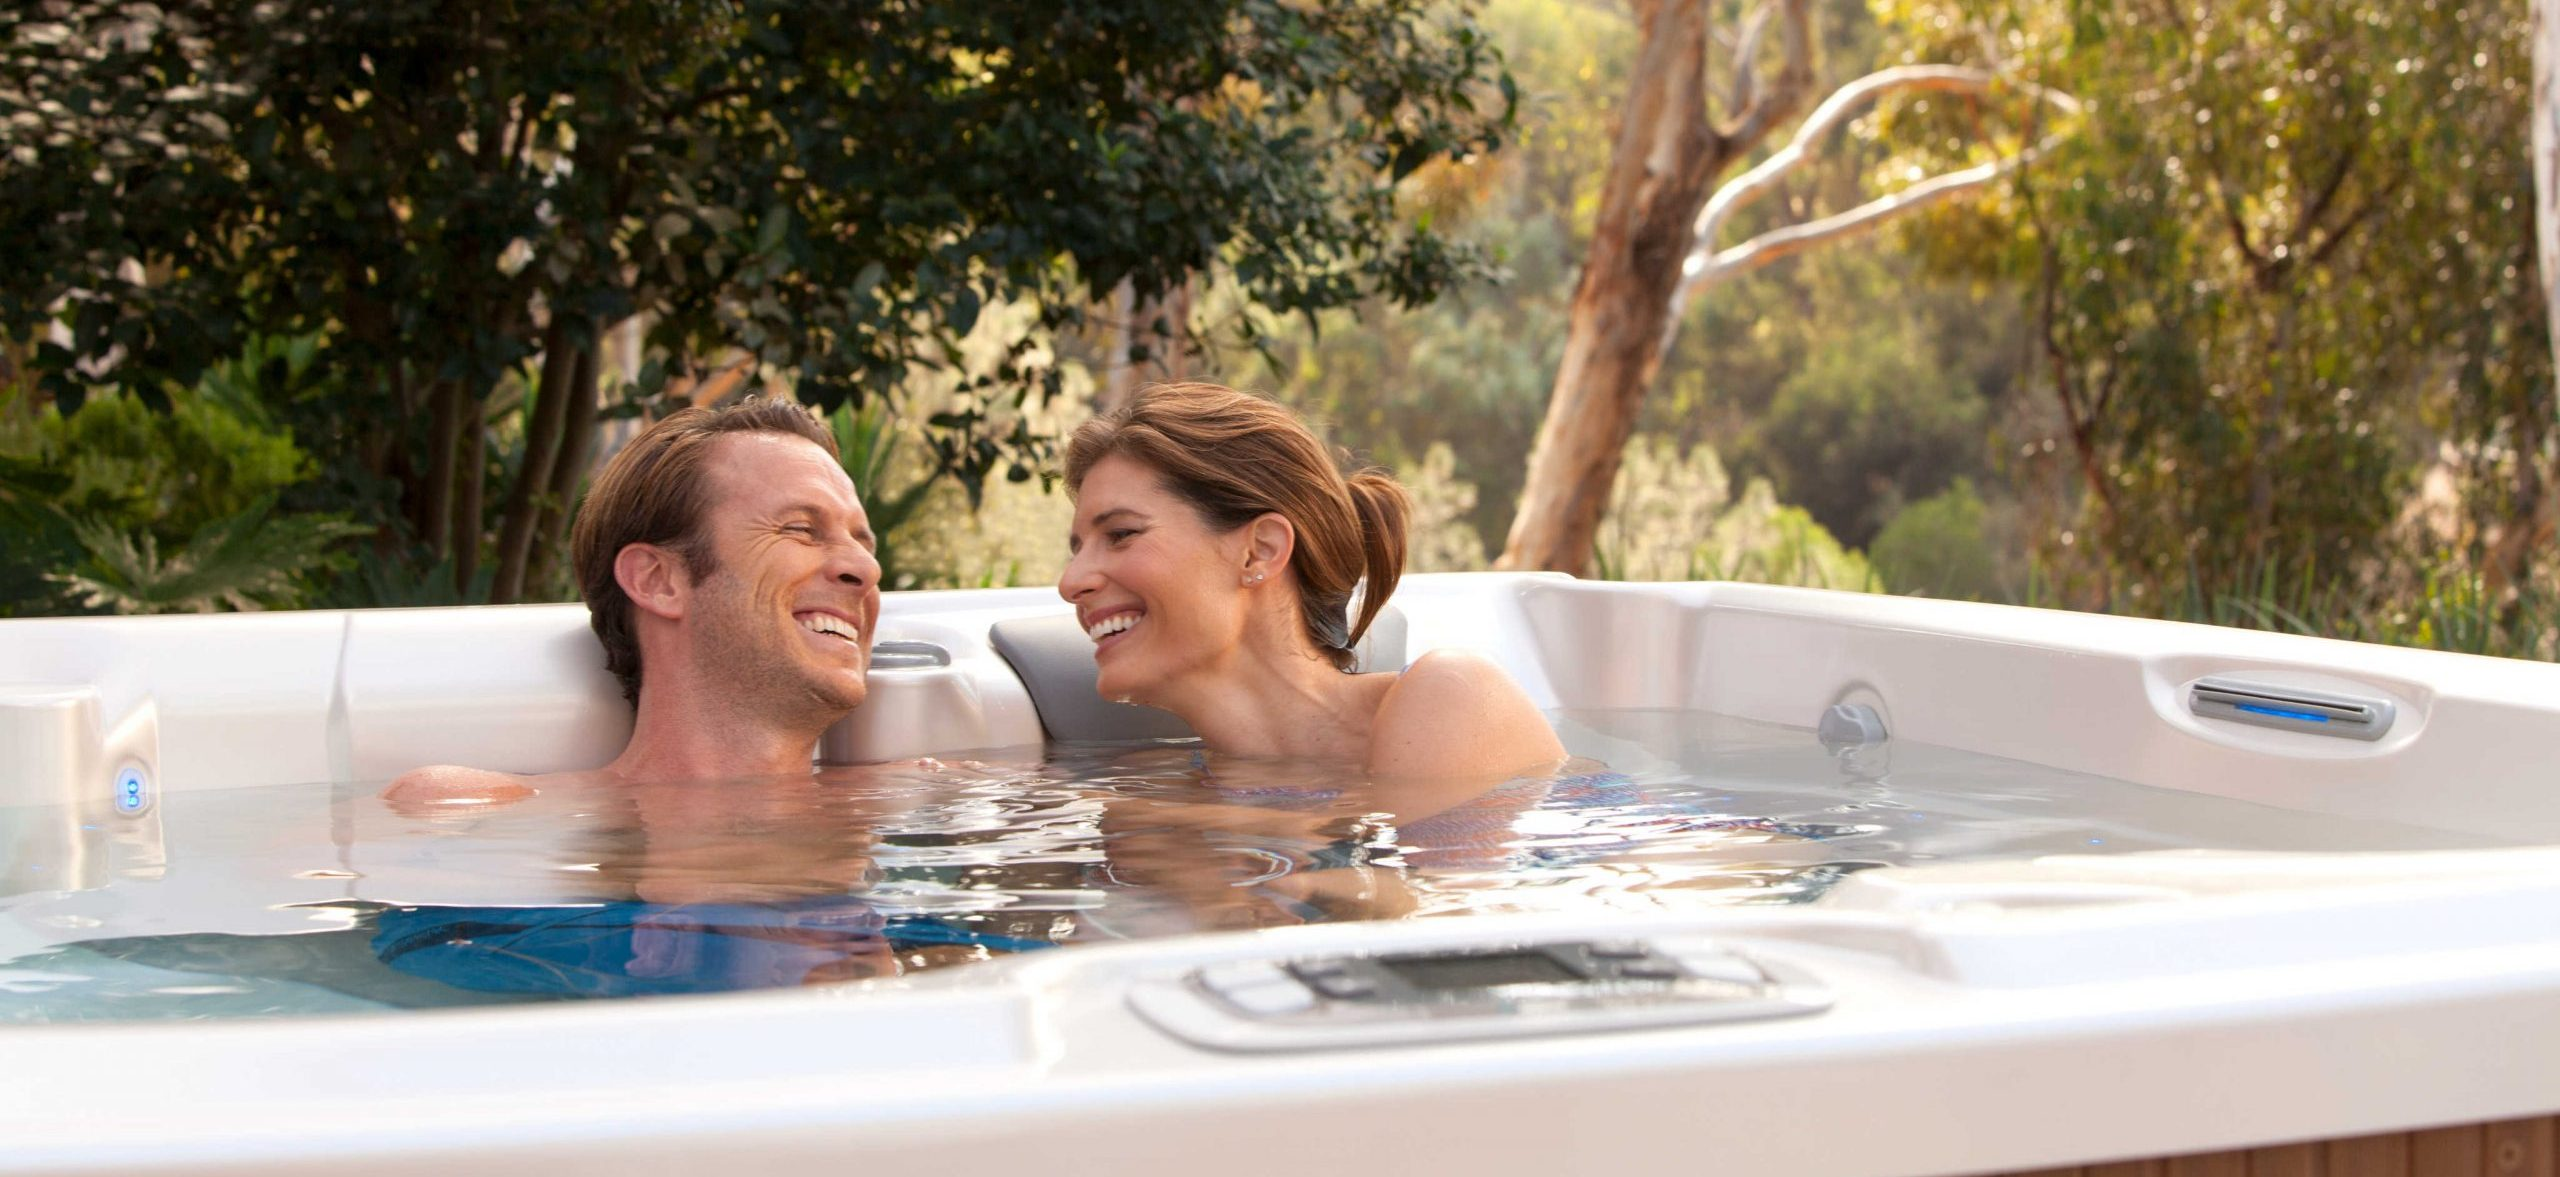 Stop Fooling Around and Buy a Hot Tub